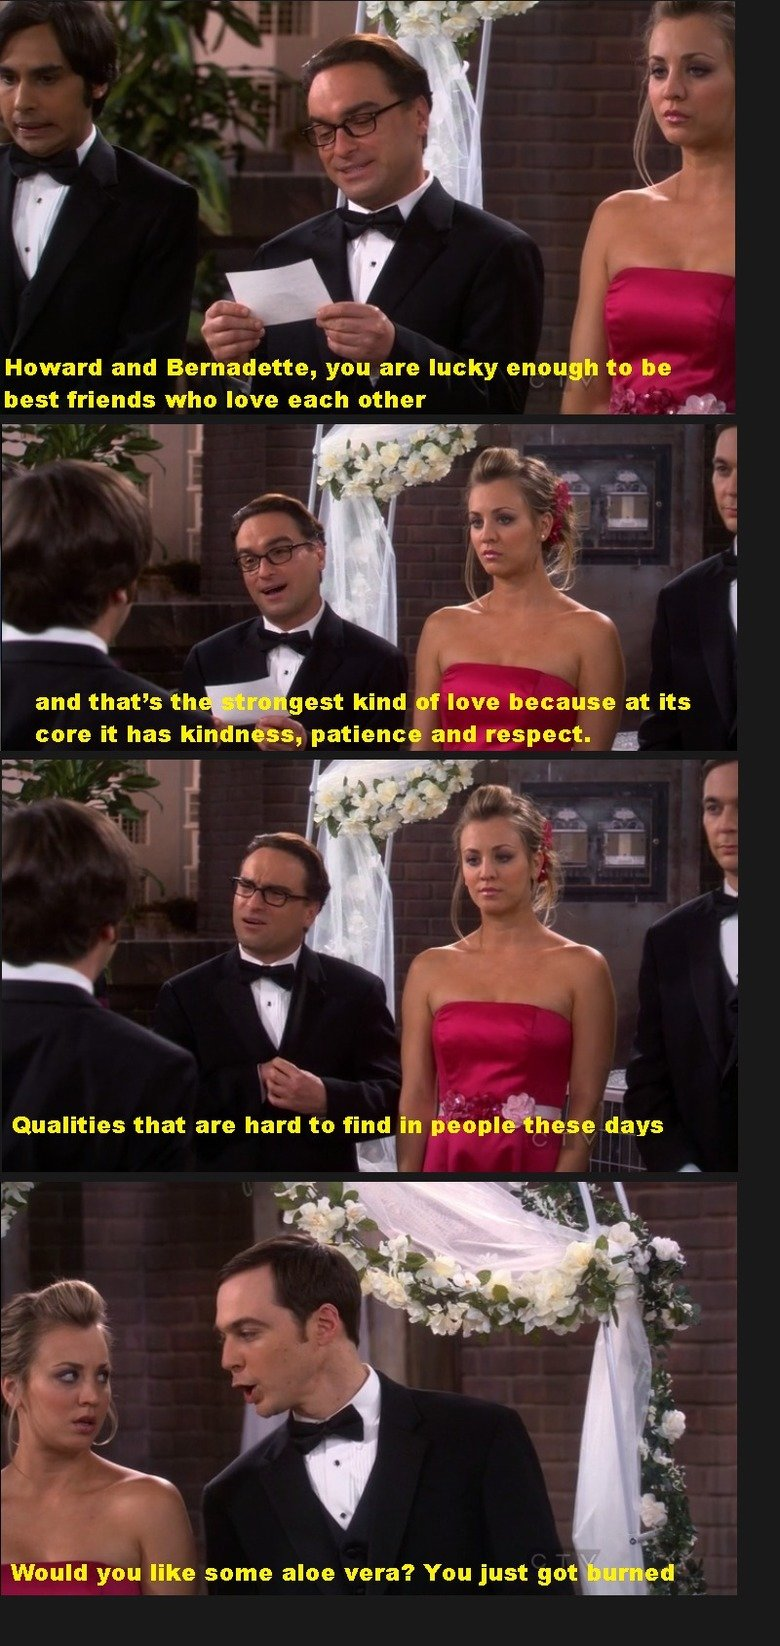 The Big Bang Theory. This is From The Big Bang Theory Season 5 Episode 24 And yes it is From a TV SHOW. Howard and Bernadette, yen are lucky enough to be best f